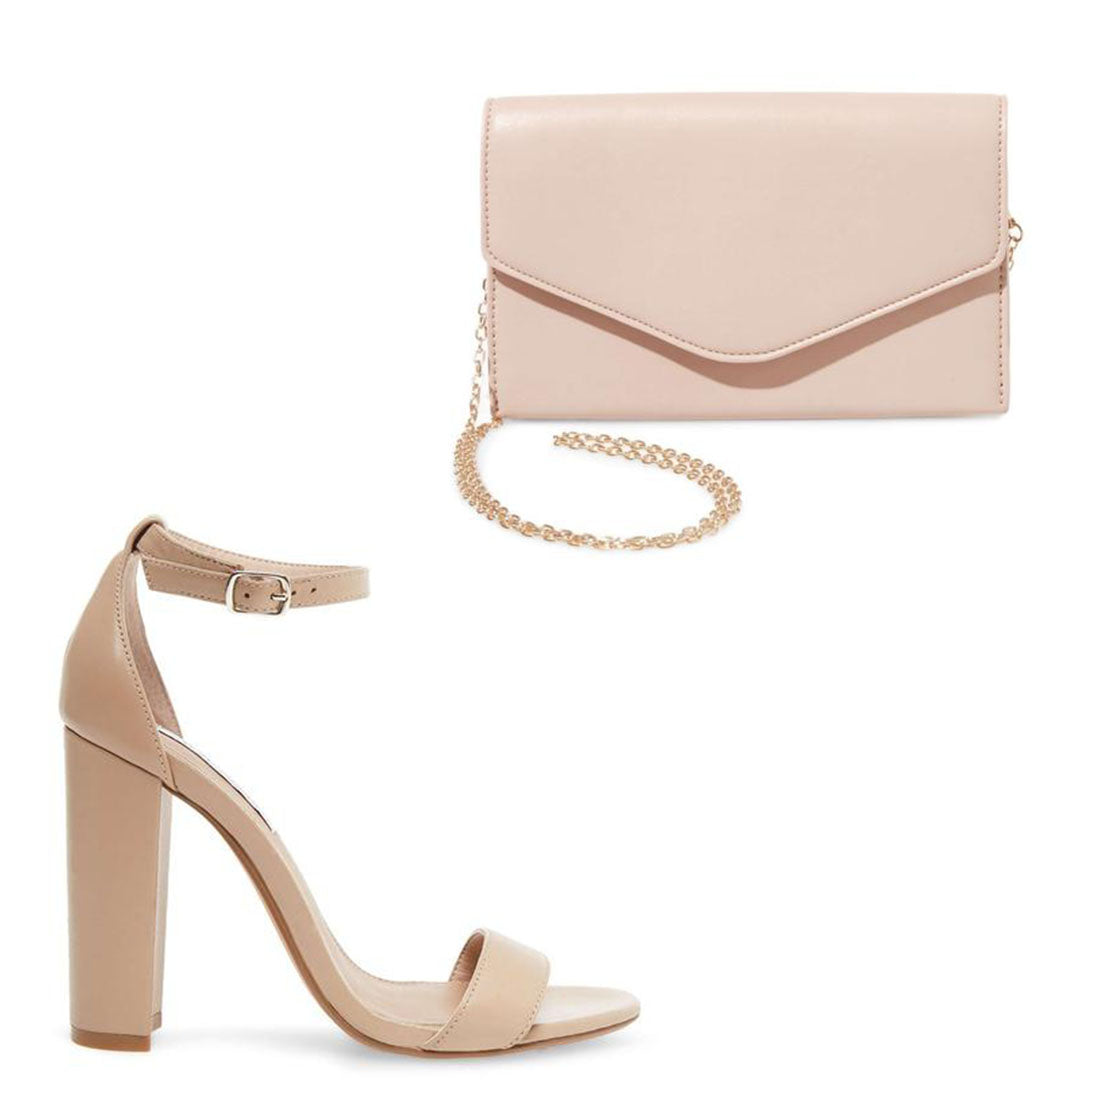 CARRSON BLUSH LEATHER + BWORLDLY NUDE